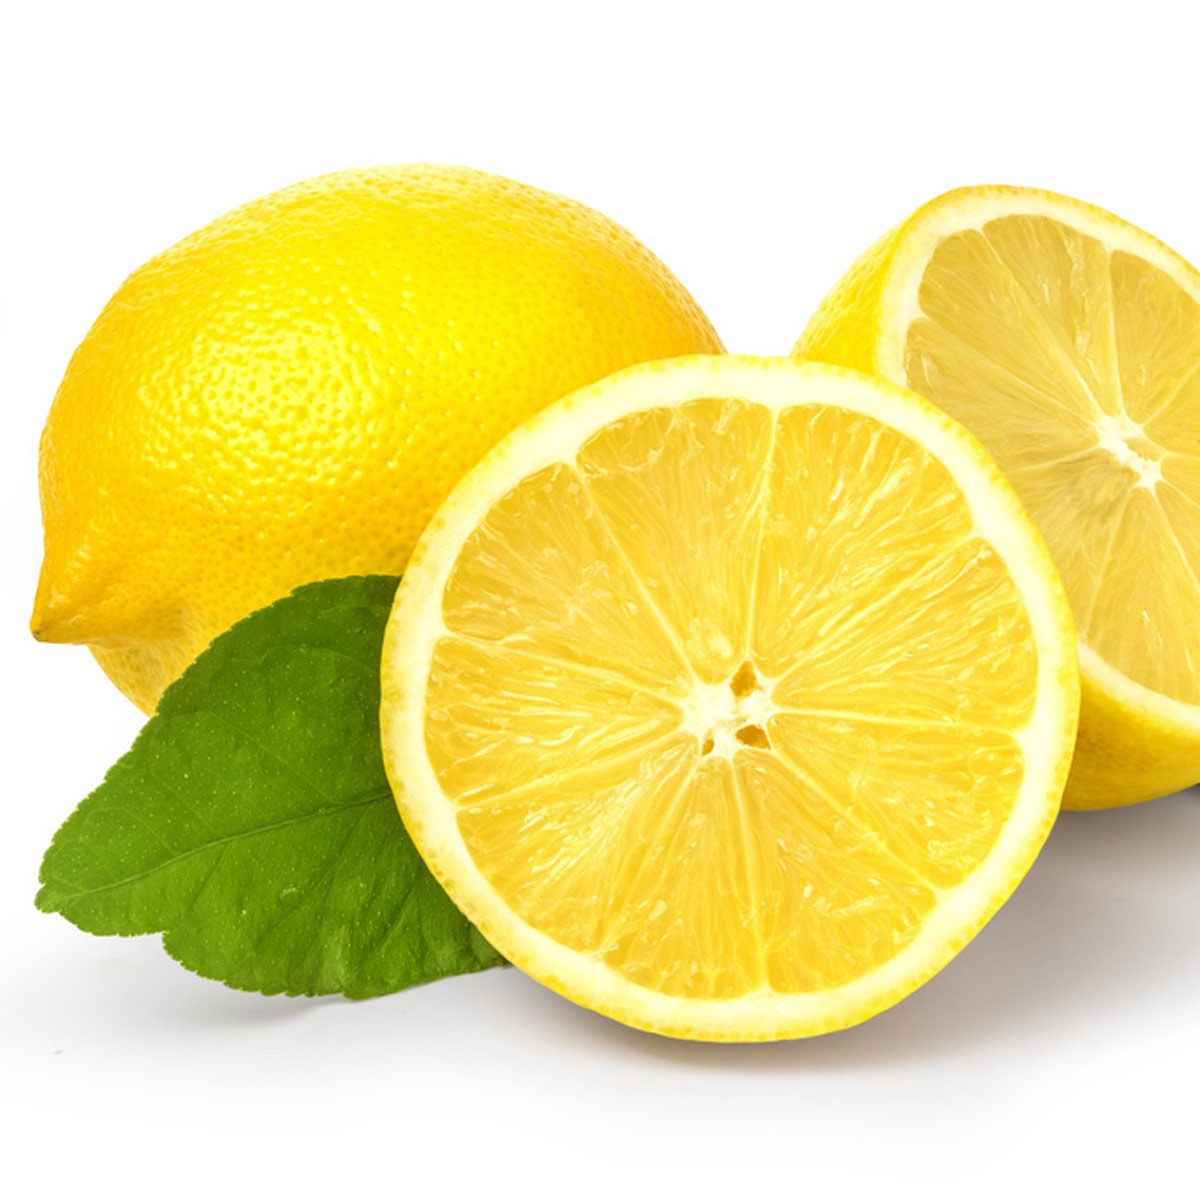 What's the best way to store lemons?